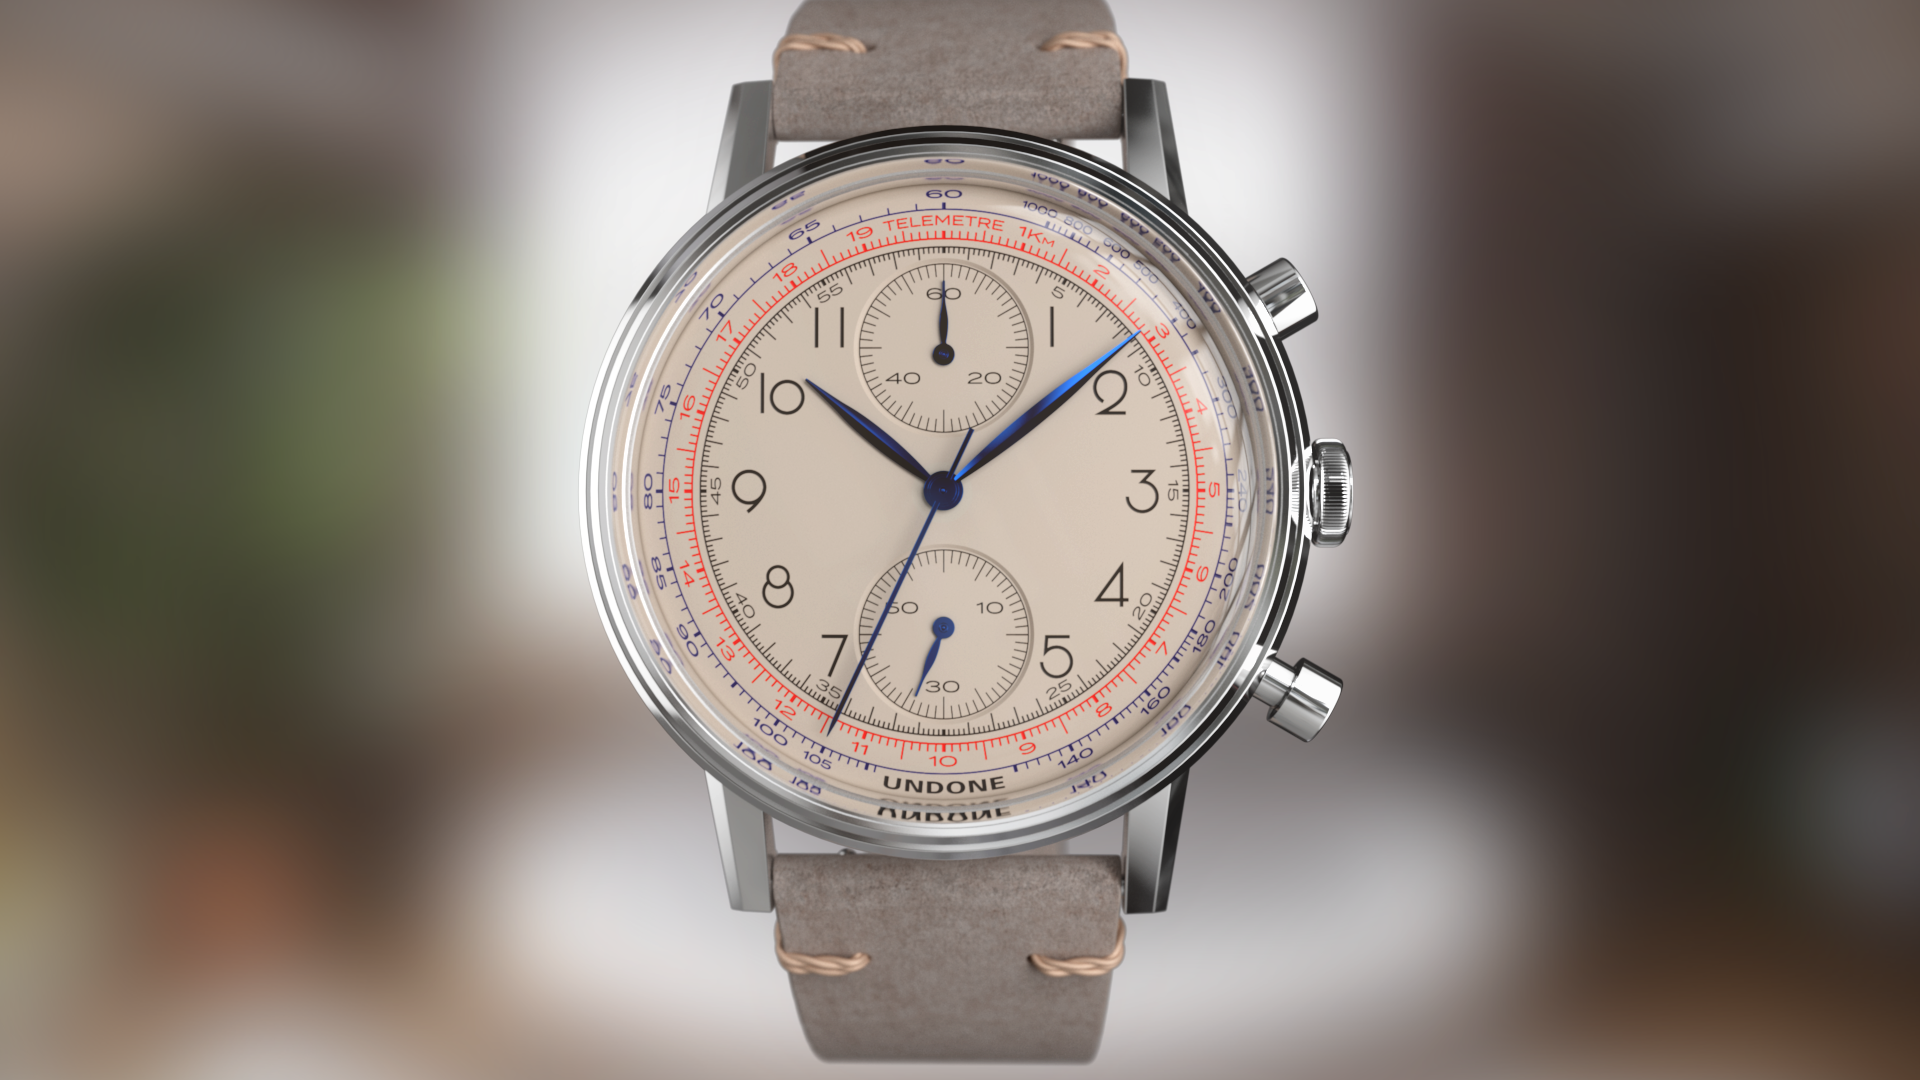 UNDONE urban vintage watch from photorealistic sizzle reel